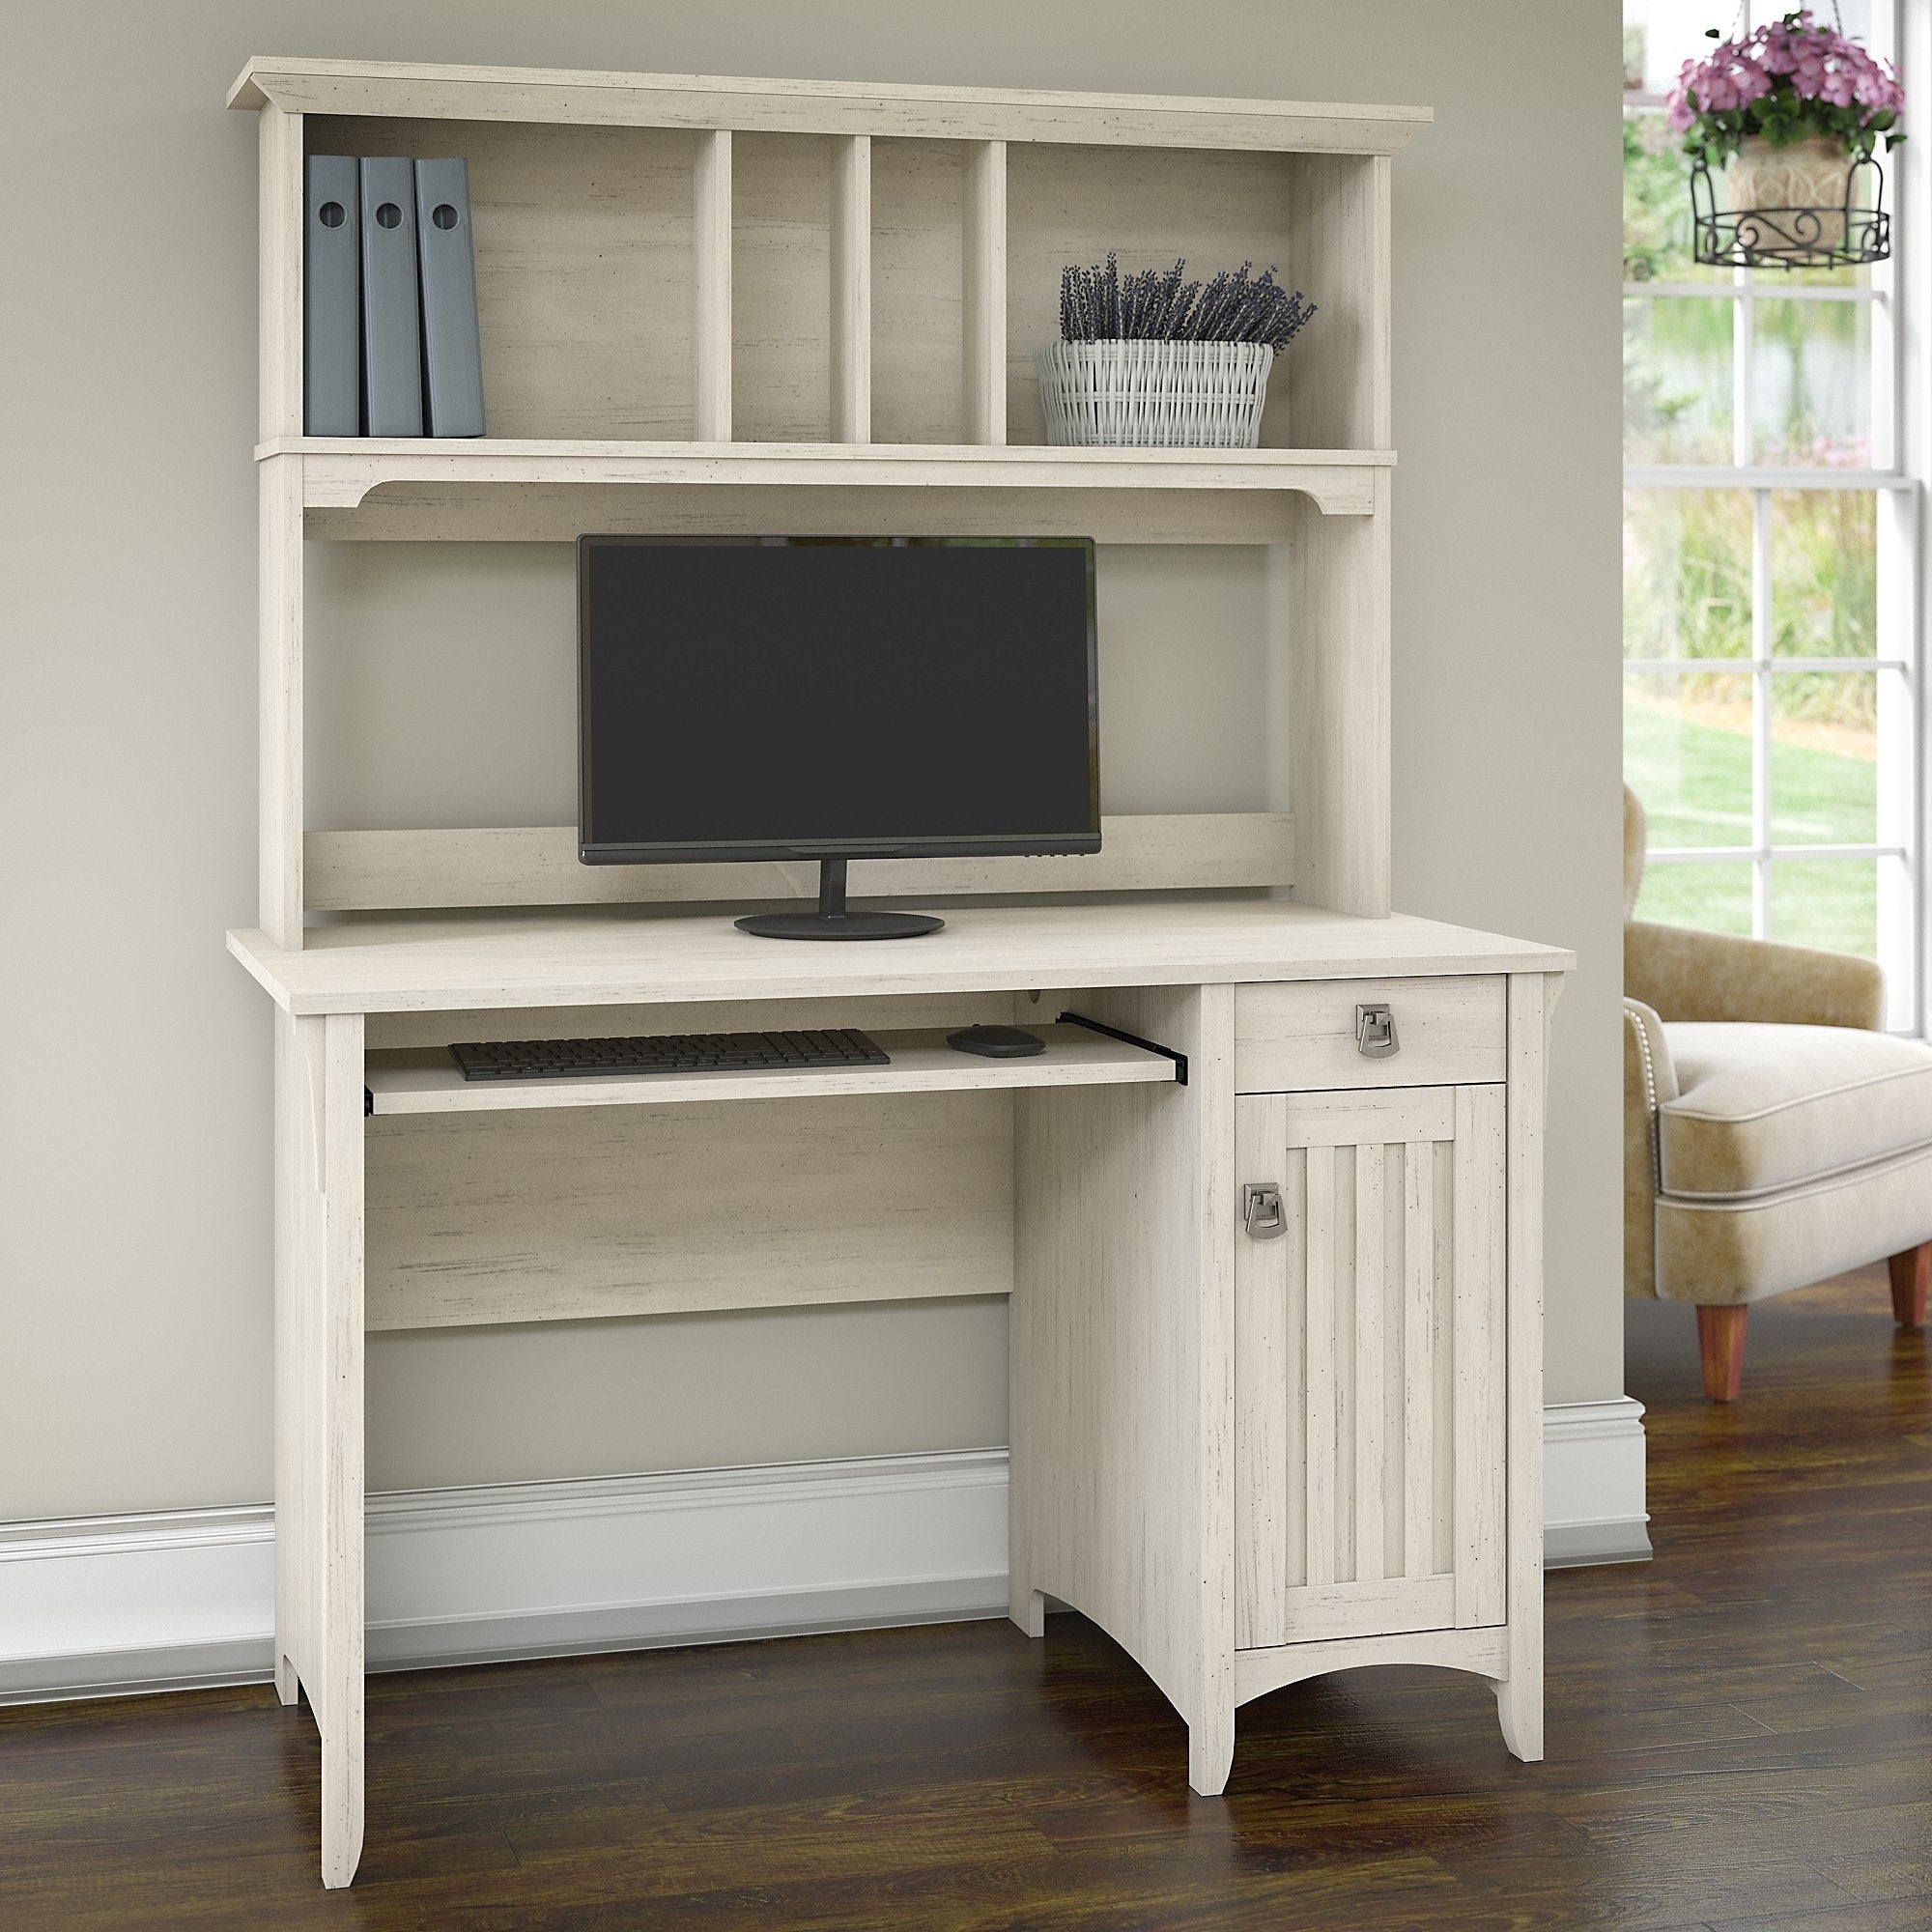 office computer furniture quality home office the gray barn lowbridge mission style desk with hutch buy offwhite desks computer tables online at overstockcom our